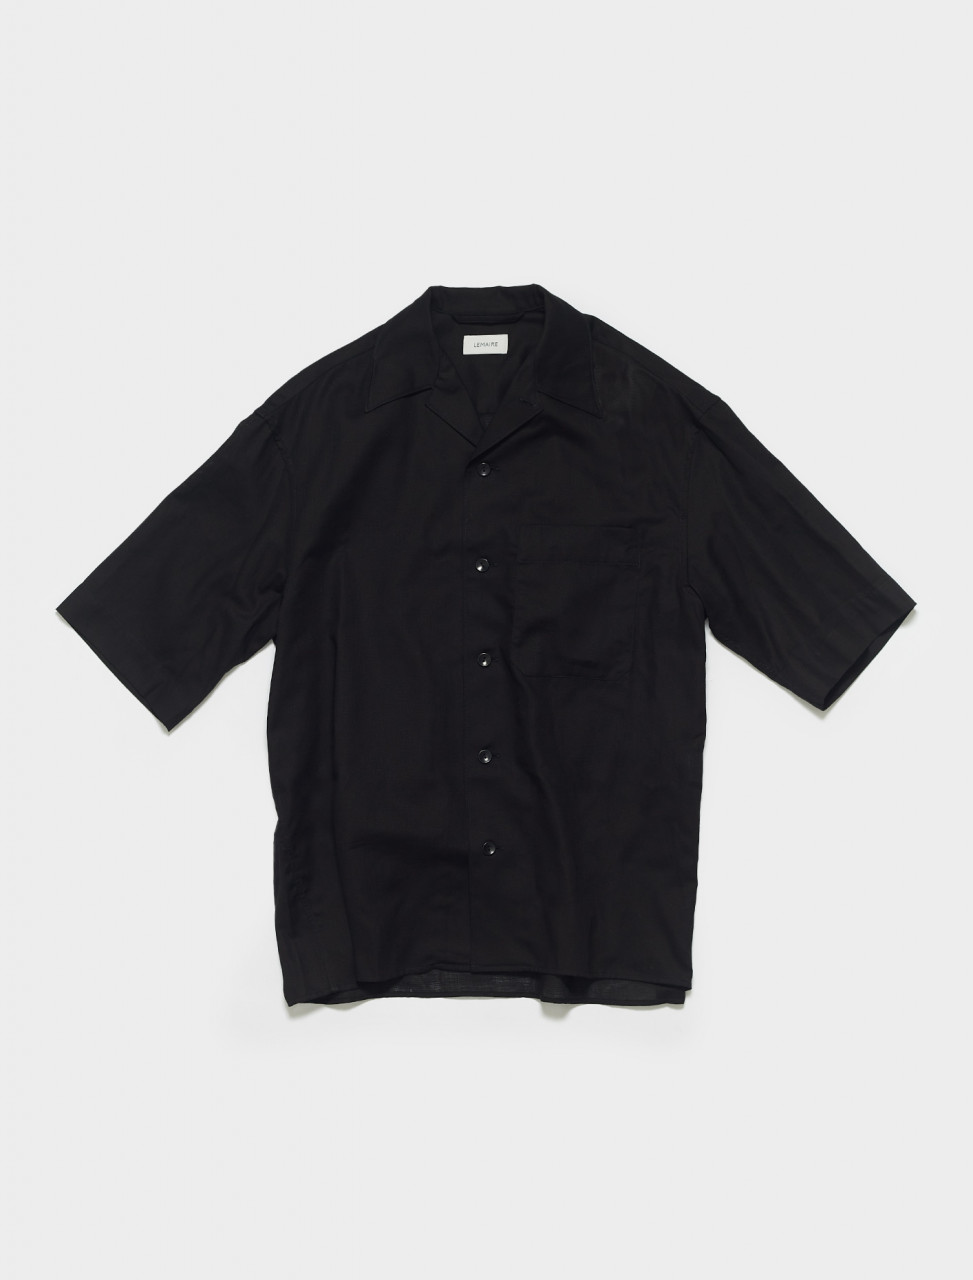 M-211-SH160-LF550-999 LEMAIRE SHORT SLEEVE SHIRT IN BLACK